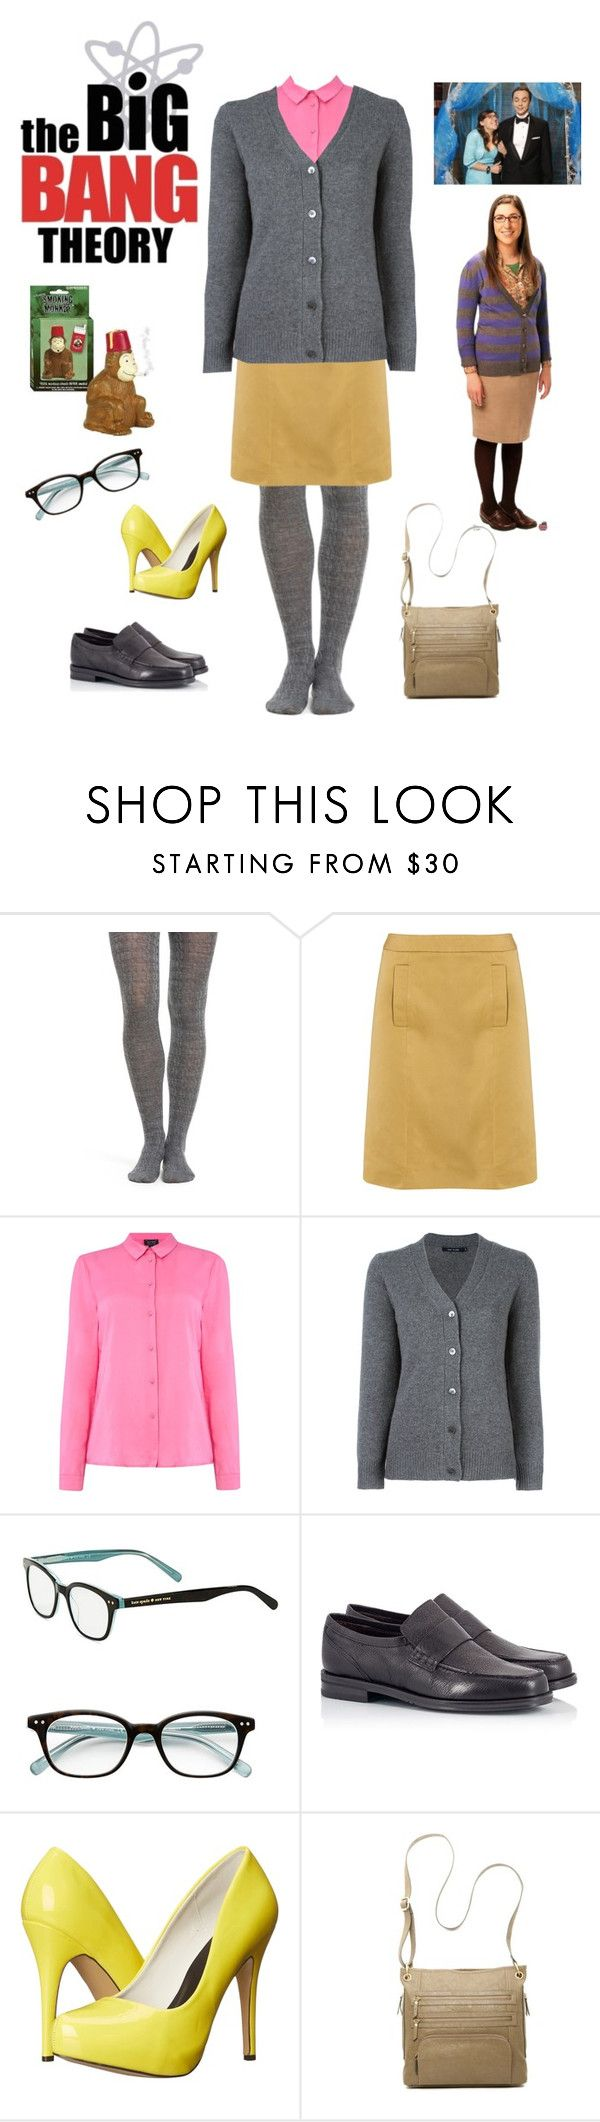 """Halloween Costume Amy Farrah Fowler"" by onetrakmnd ❤ liked on Polyvore featuring Smartwool, Bottega Veneta, Armani Jeans, Sofie D'hoore, Kate Spade, Theory, Fratelli Karida, Michael Antonio and Bueno"